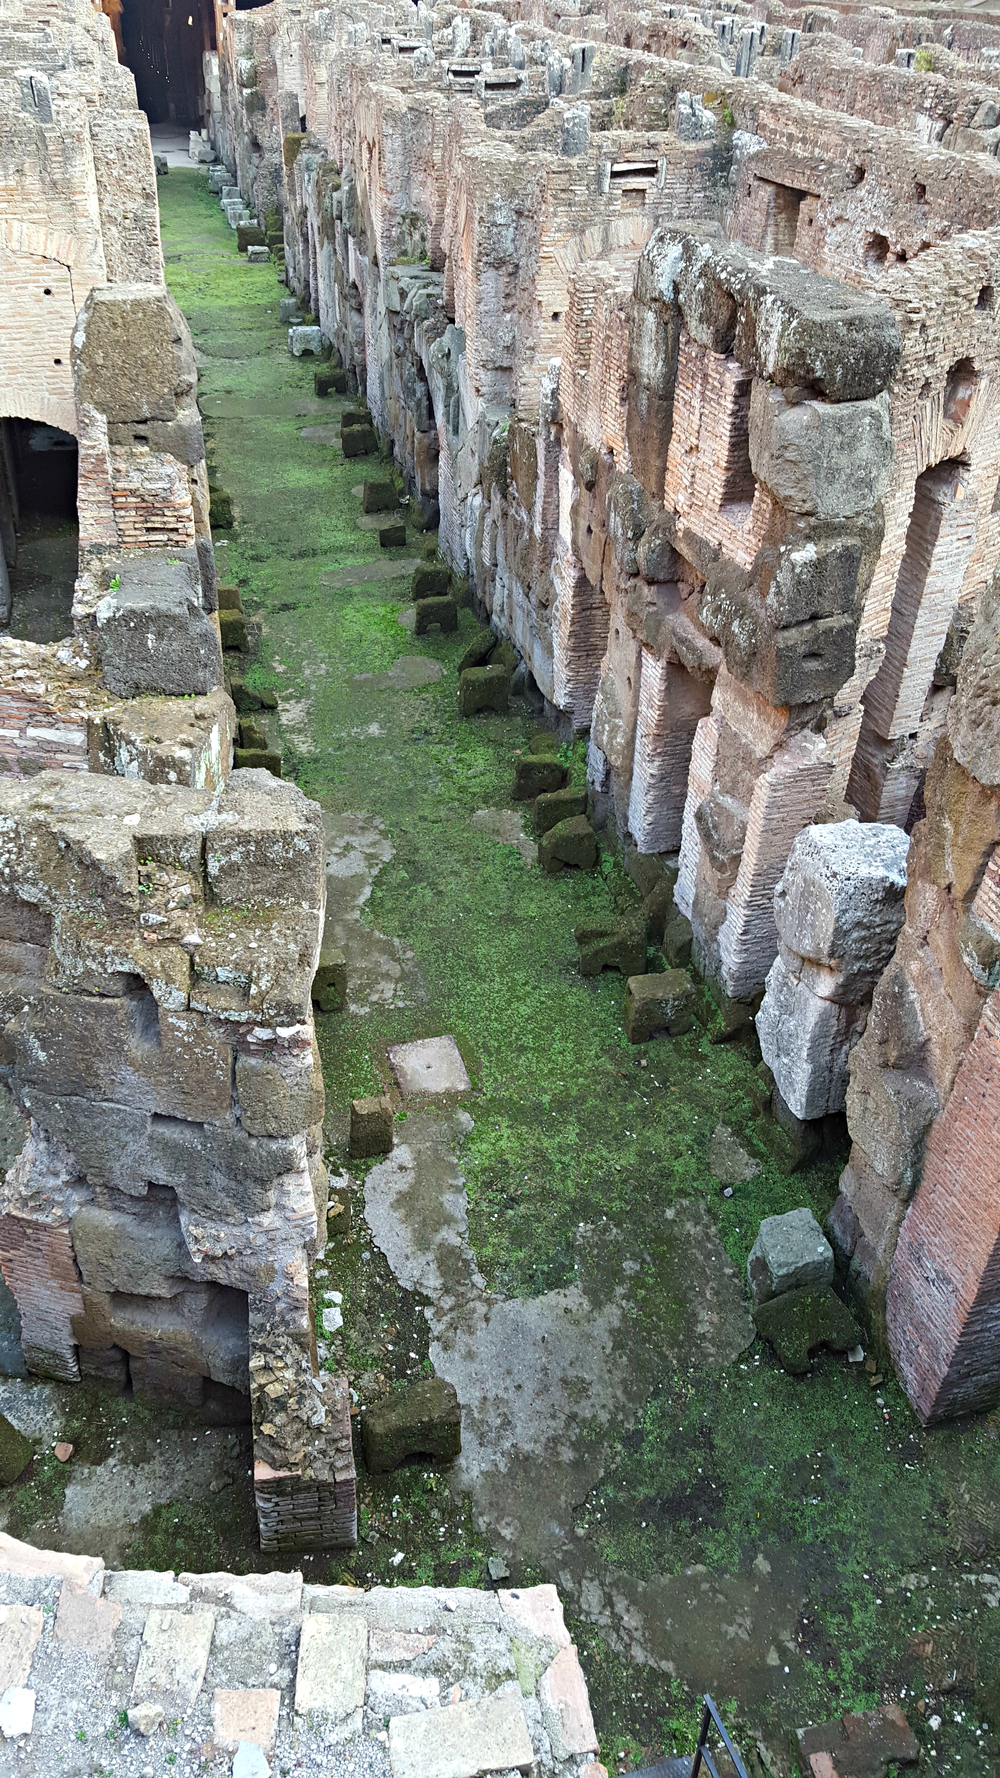 Rows of cages and passages - the Colosseam.jpg